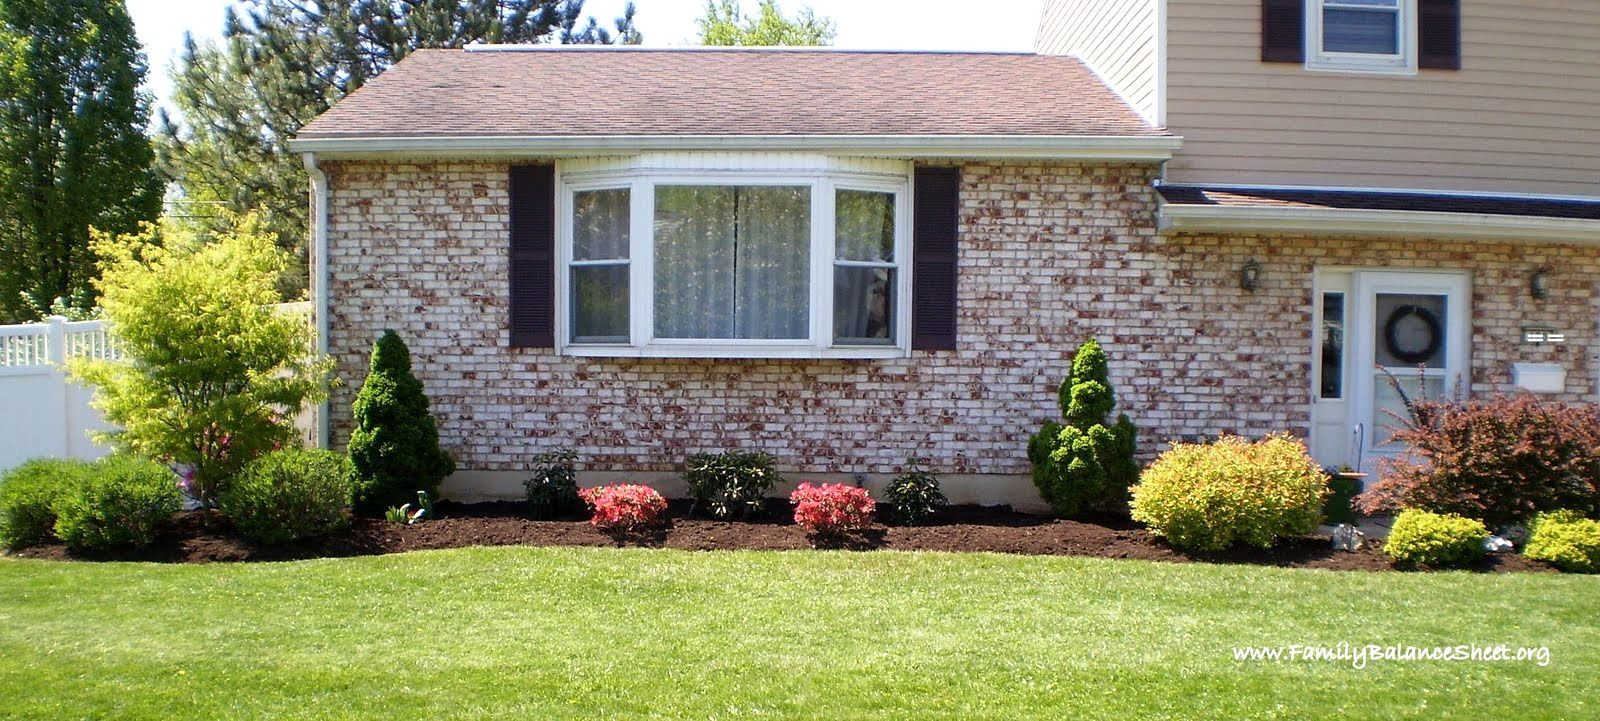 Landscaping ideas front yard ranch style home front yard for Small front garden plans